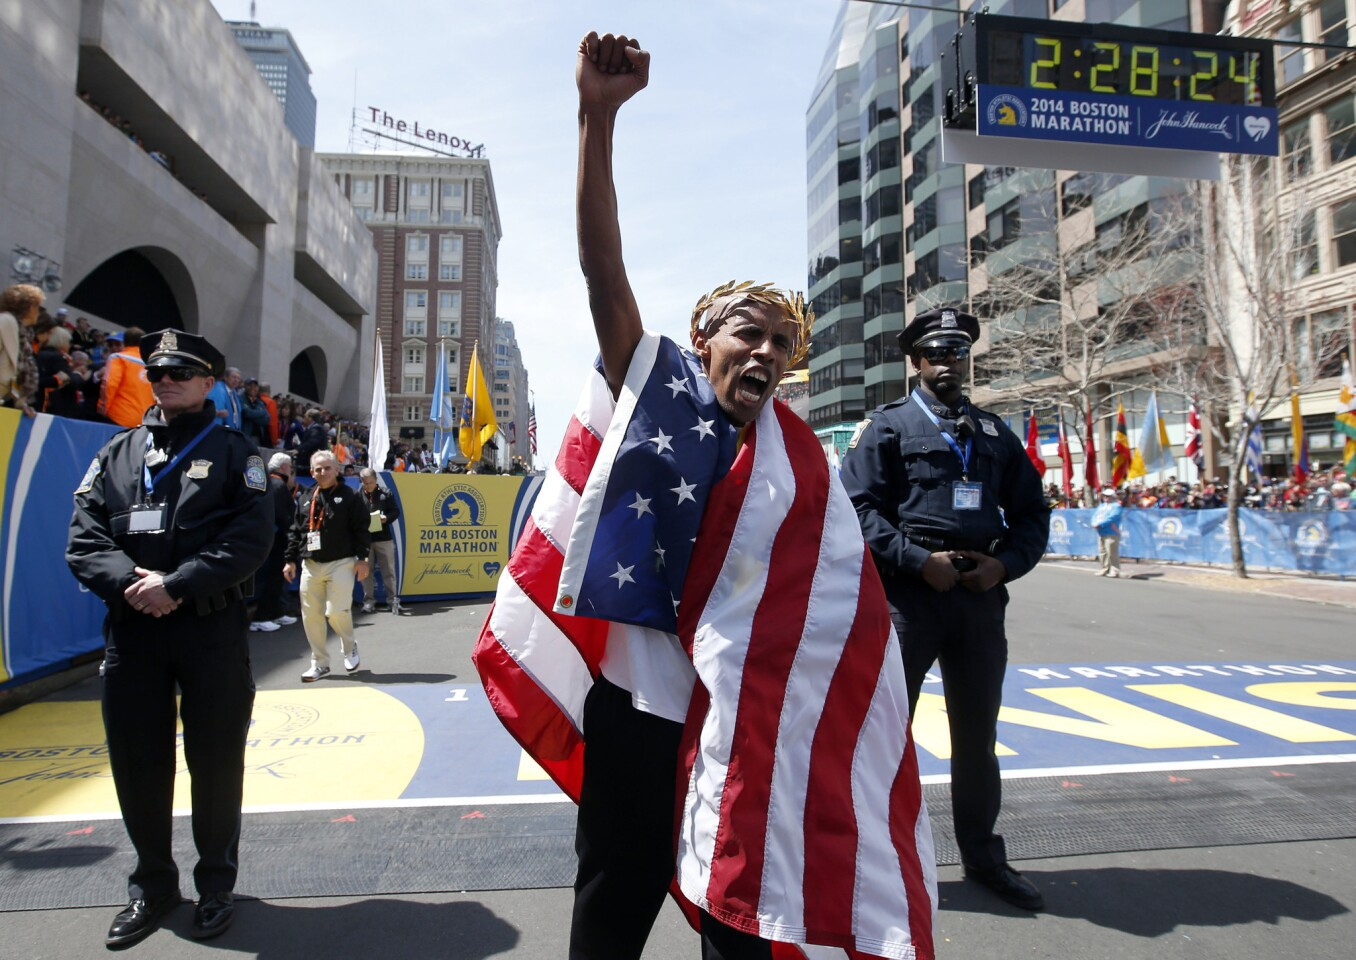 Victory at Boston Marathon